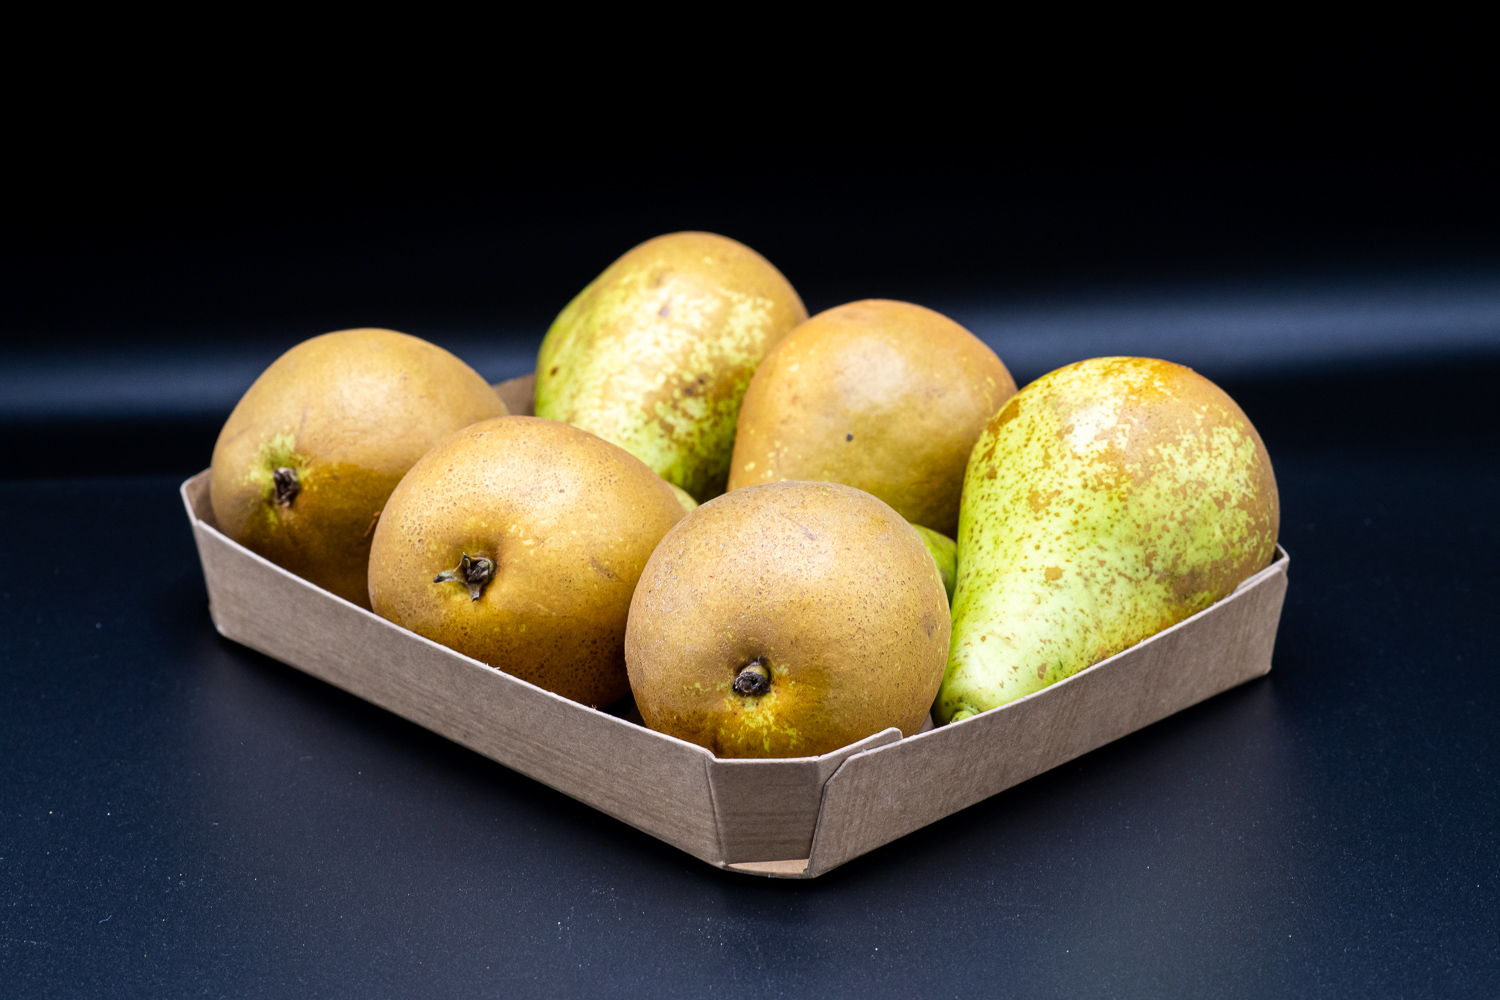 Solidus-Solutions-cardboard-punnets-fruit-pears